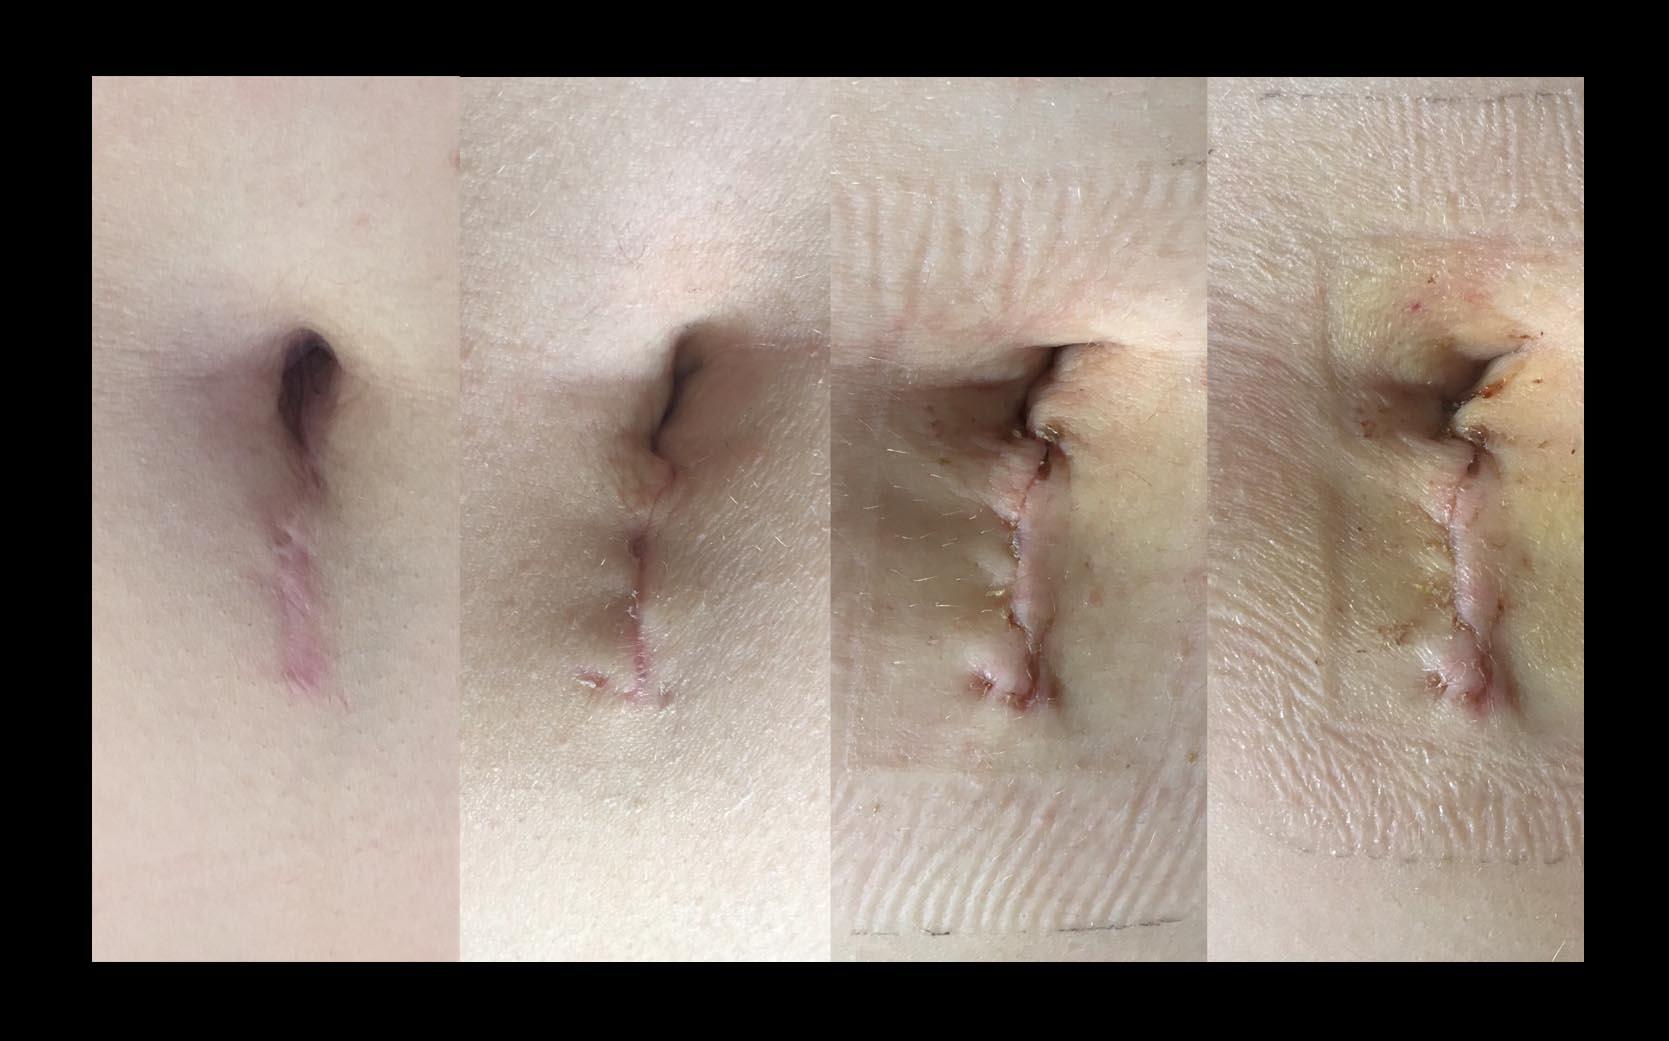 Liver resection scar laparoscopic keyhole liver resection FNH focal nodula hyperplasia